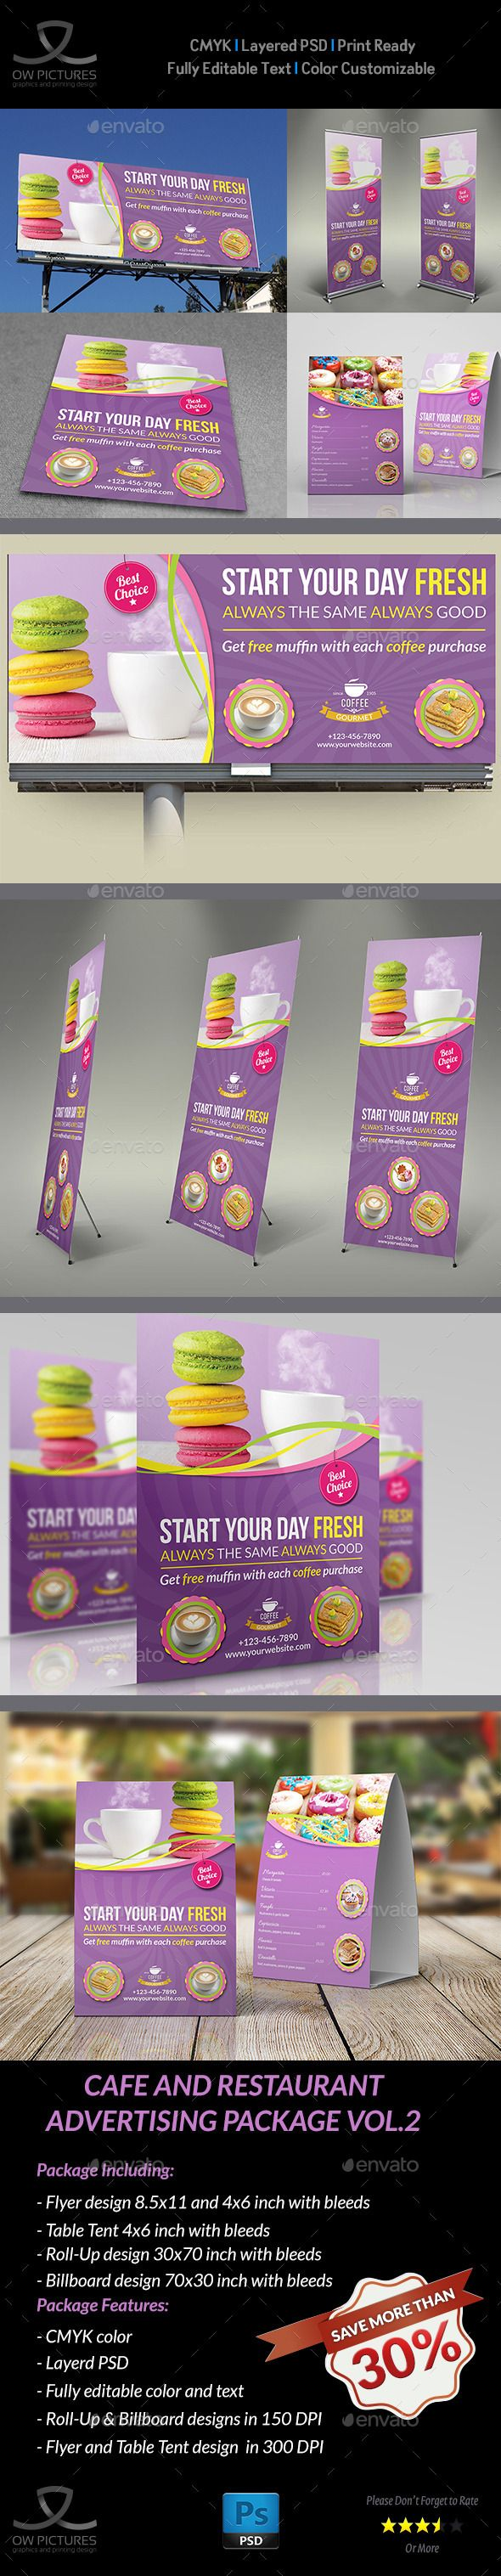 Cafe and Restaurant Advertising Bundle Template #design Download: http://graphicriver.net/item/cafe-and-restaurant-advertising-bundle-vol2/11753698?ref=ksioks